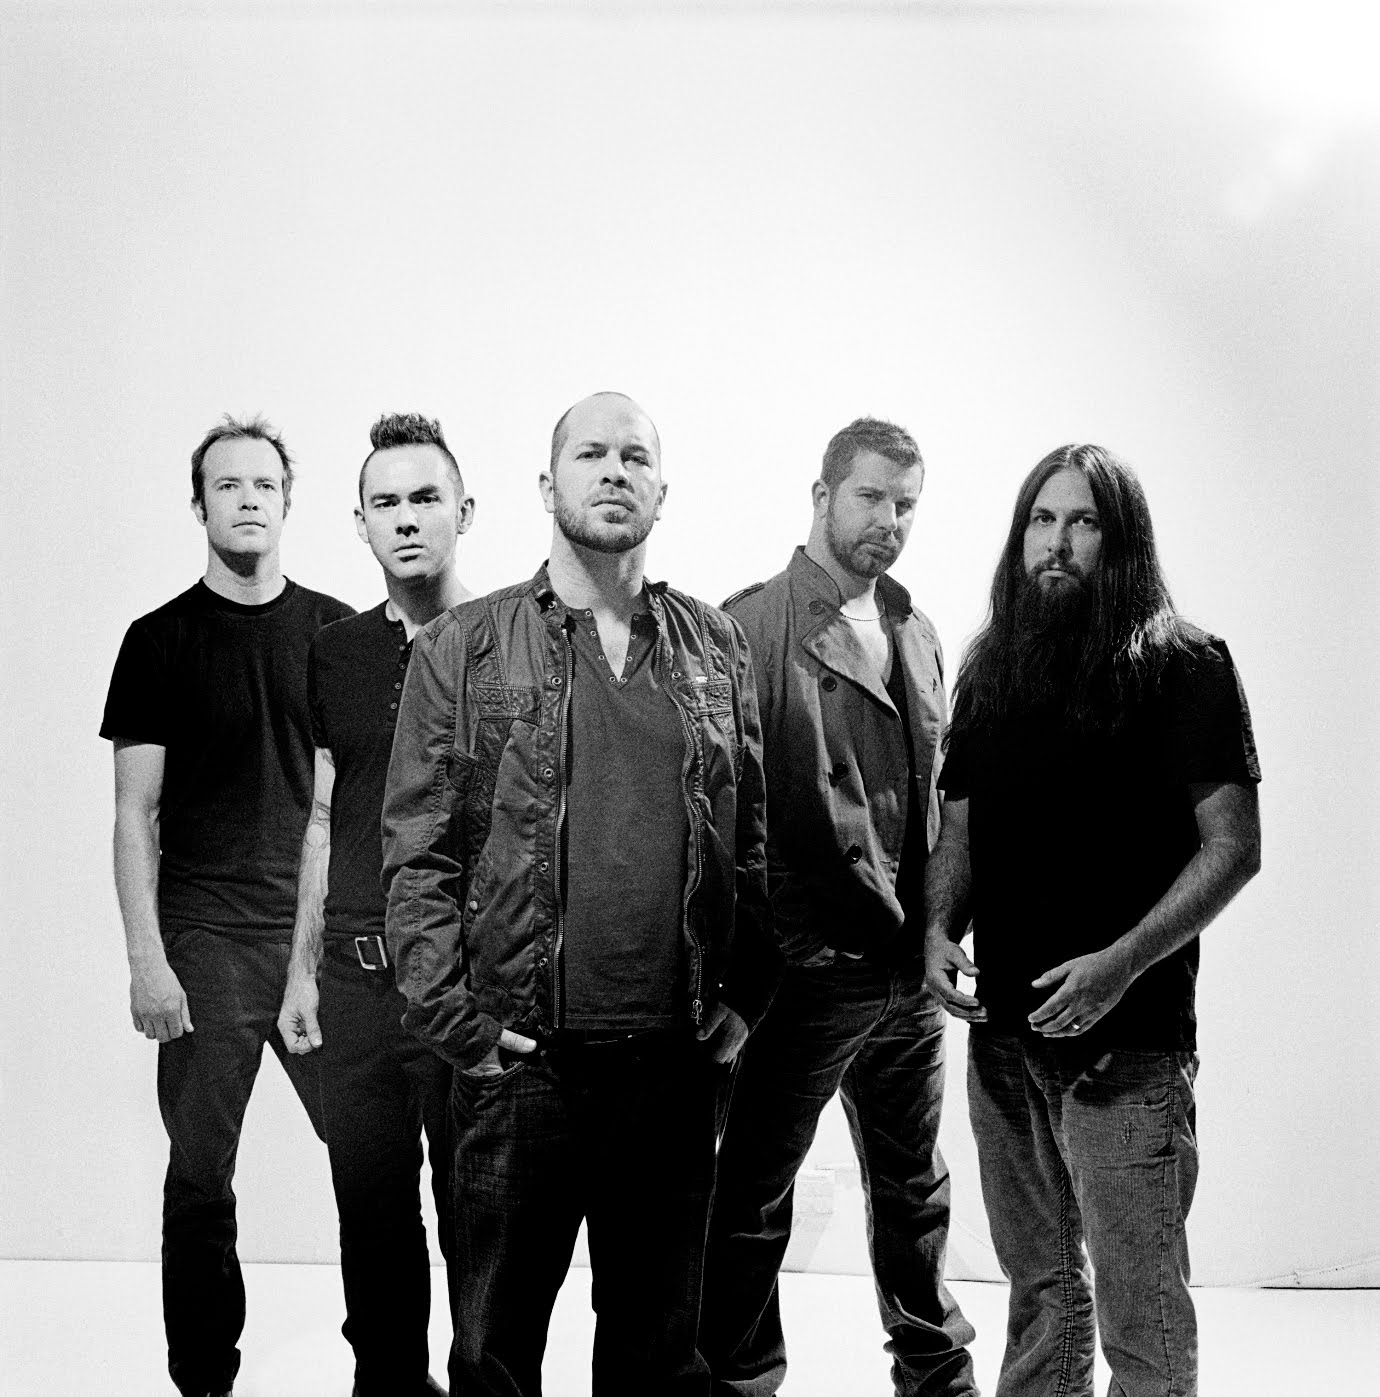 http://4.bp.blogspot.com/-RcKePSrot6c/TZDLM5CqK1I/AAAAAAAAAGw/H0qLhtb667E/s1600/Finger-Eleven-Black-and-White-From-Afar-2010-Photo-Credit-Ray-Lego-1MB%255B1%255D.jpg